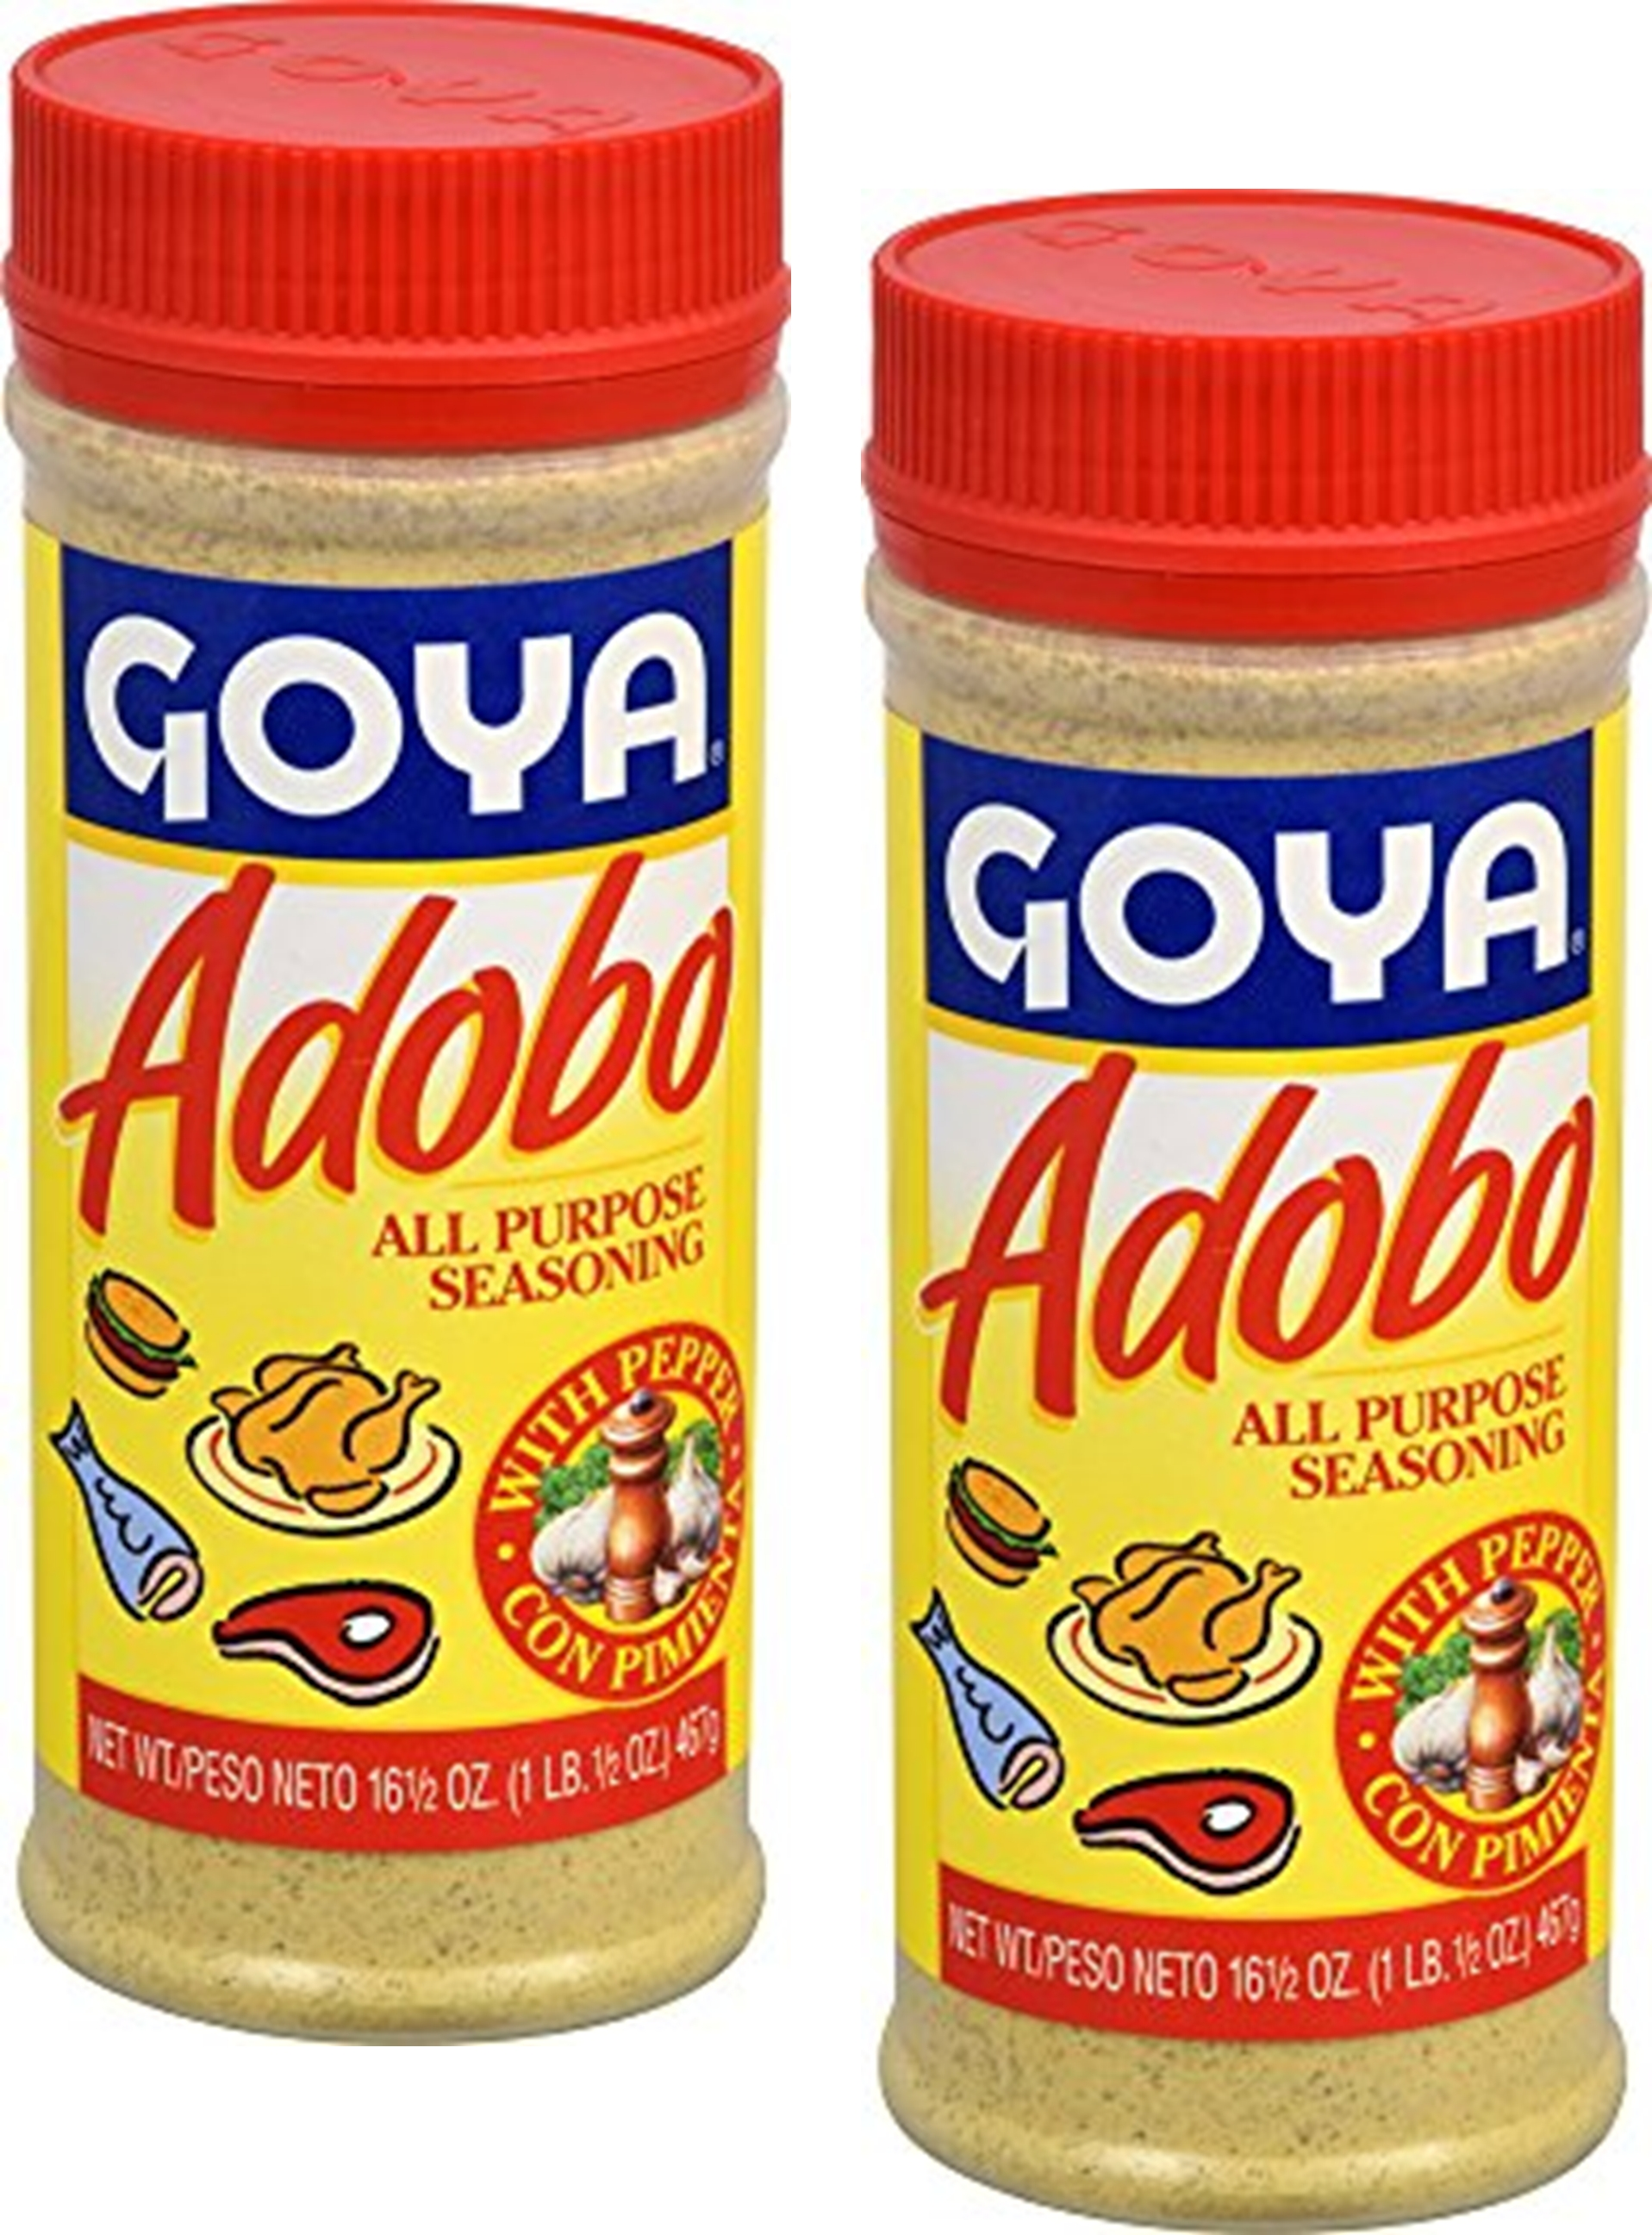 Goya Adobo All Purpose Seasoning With Pepper 16 5 Oz Pack Of 2 Walmart Com Walmart Com